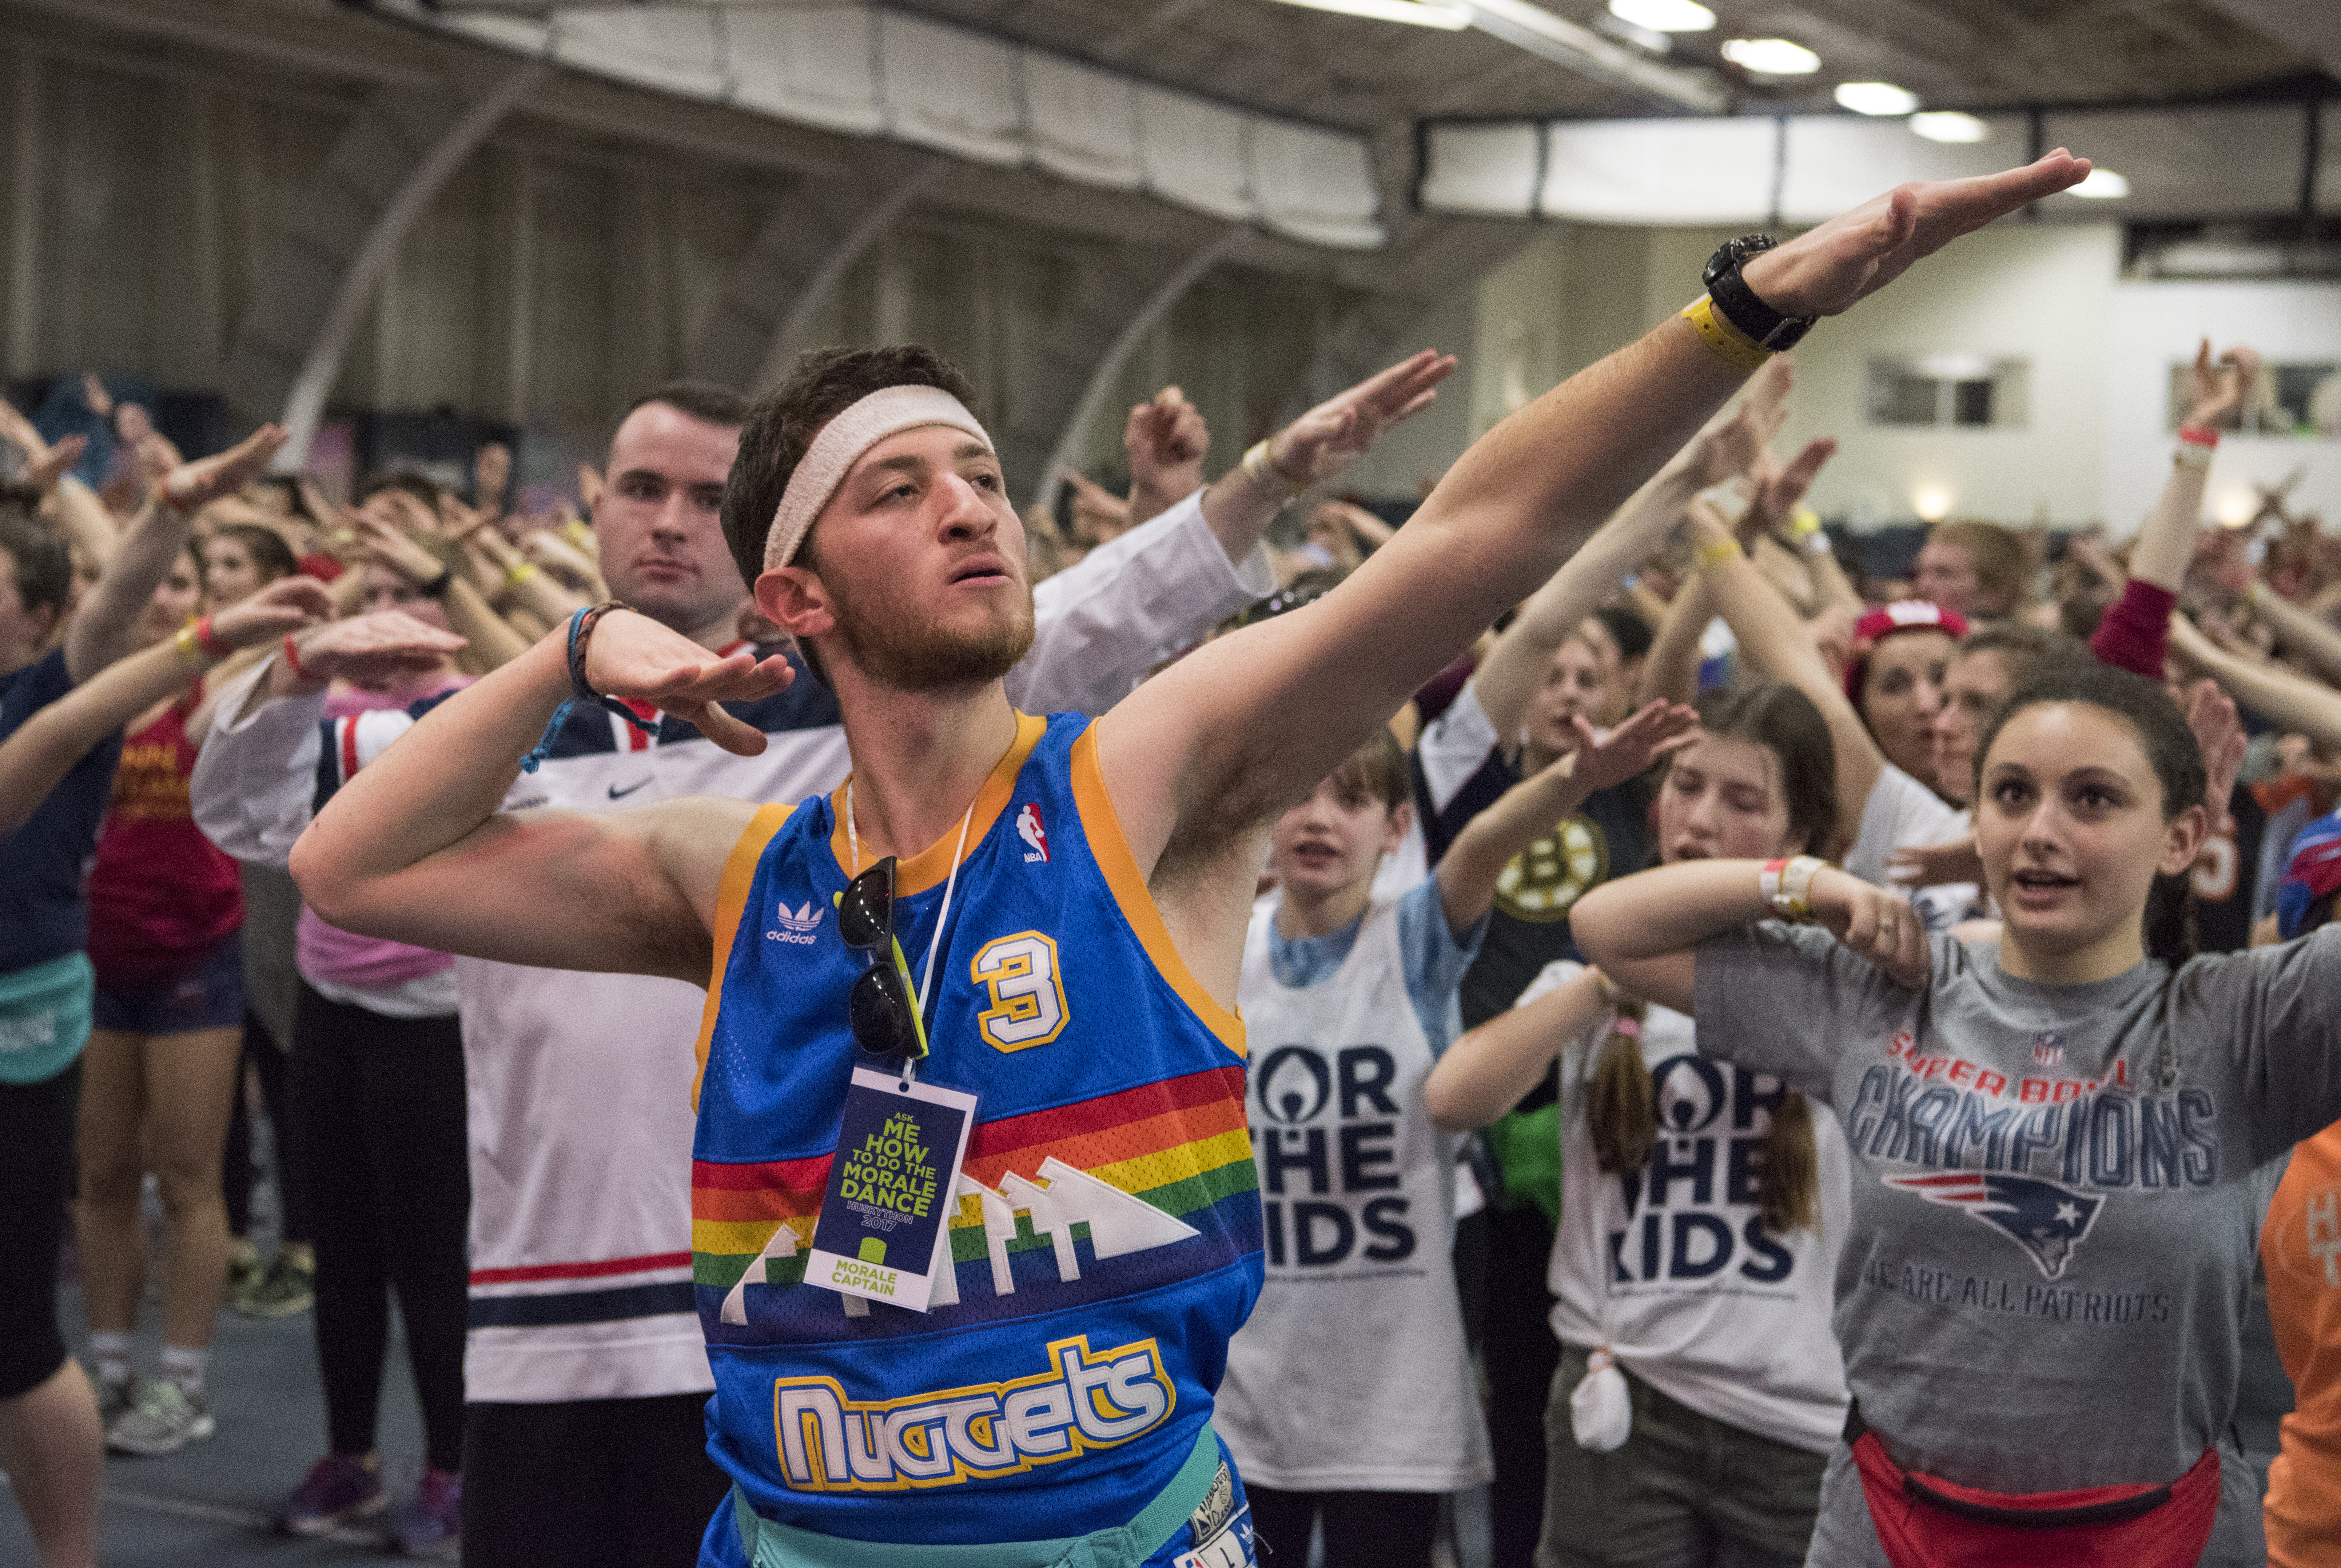 Nearly 2,000 students took part in the HuskyTHON dance marathon at the Greer Fieldhouse on Feb. 18, raising $836,174 for Connecticut Children's Medical Center. (Ryan Glista/UConn Photo)